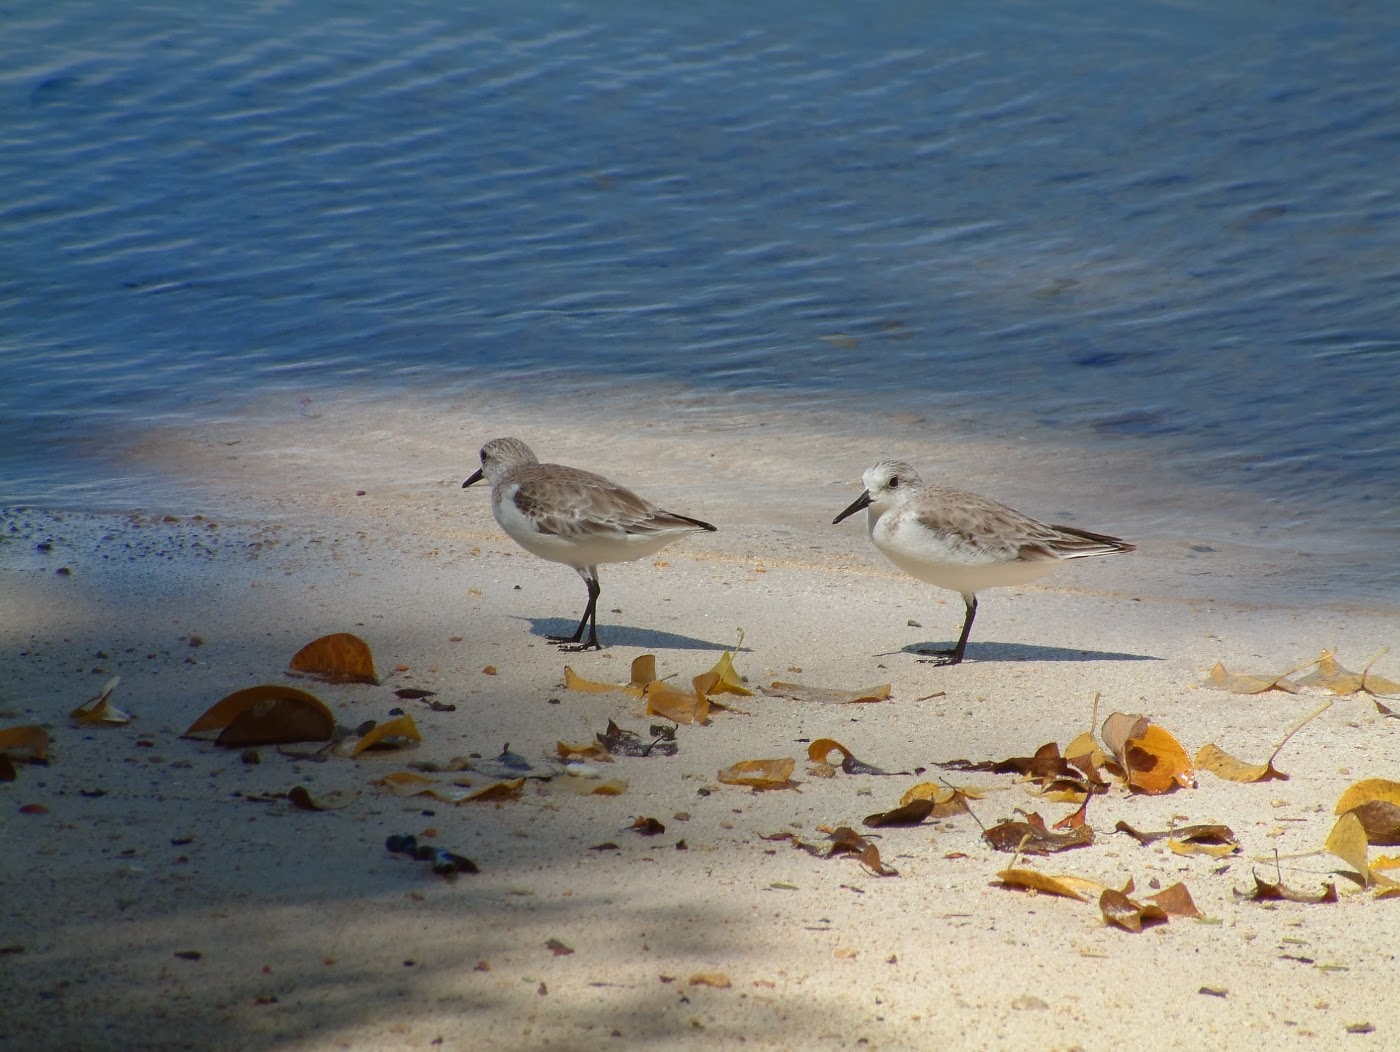 Migrant shorebirds - Sanderlings (Calidris alba) in Trinidad & Tobago